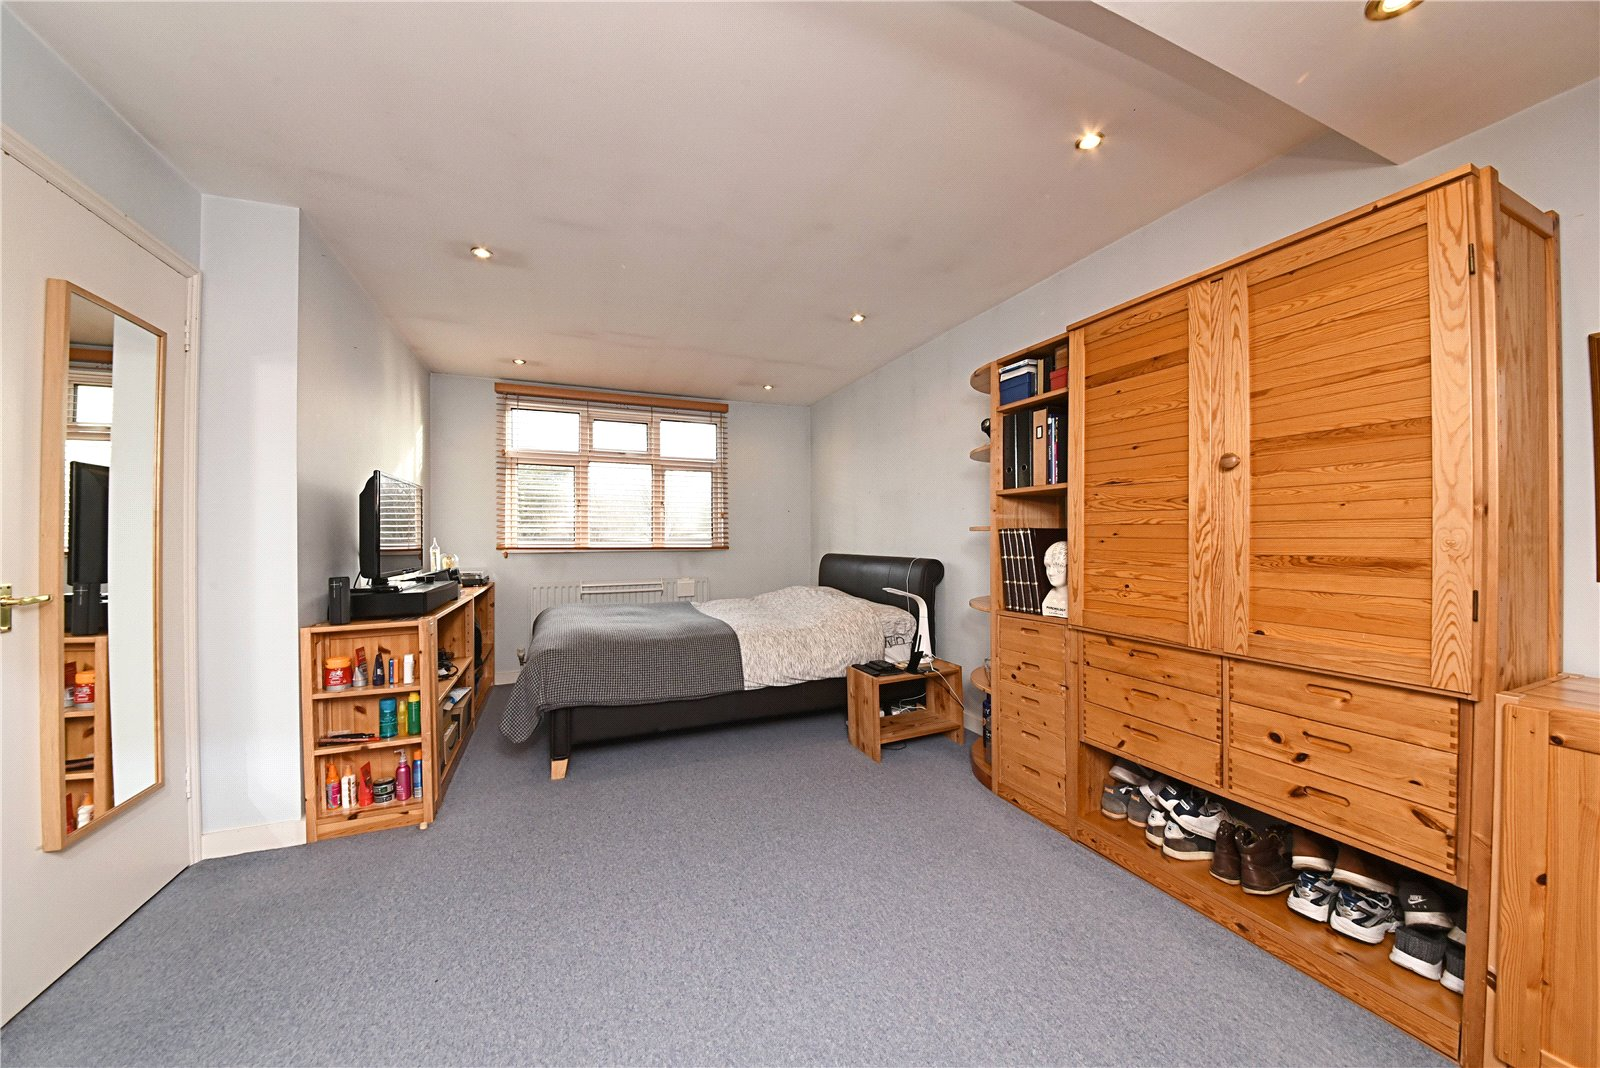 4 bed house for sale in Hendon, NW4 1LJ  - Property Image 9